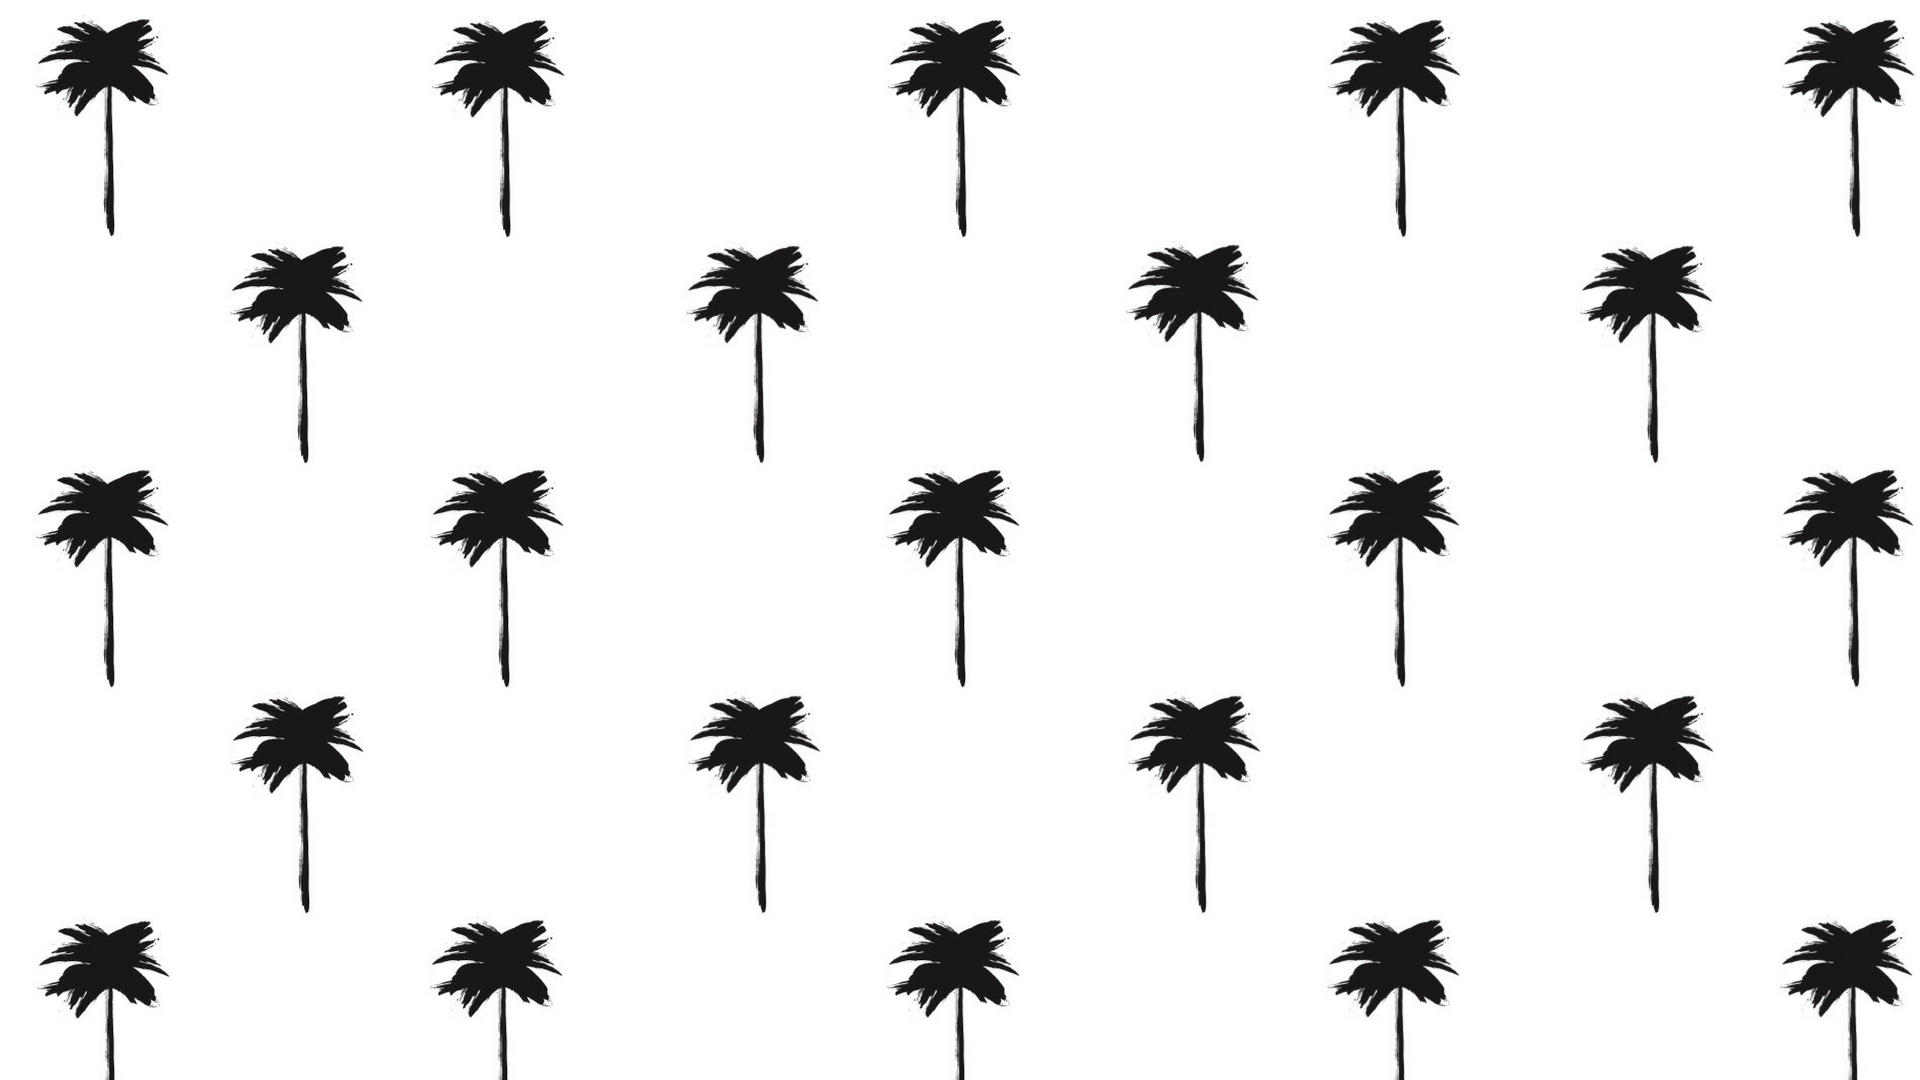 TRU Palm Wallpaper One.jpg